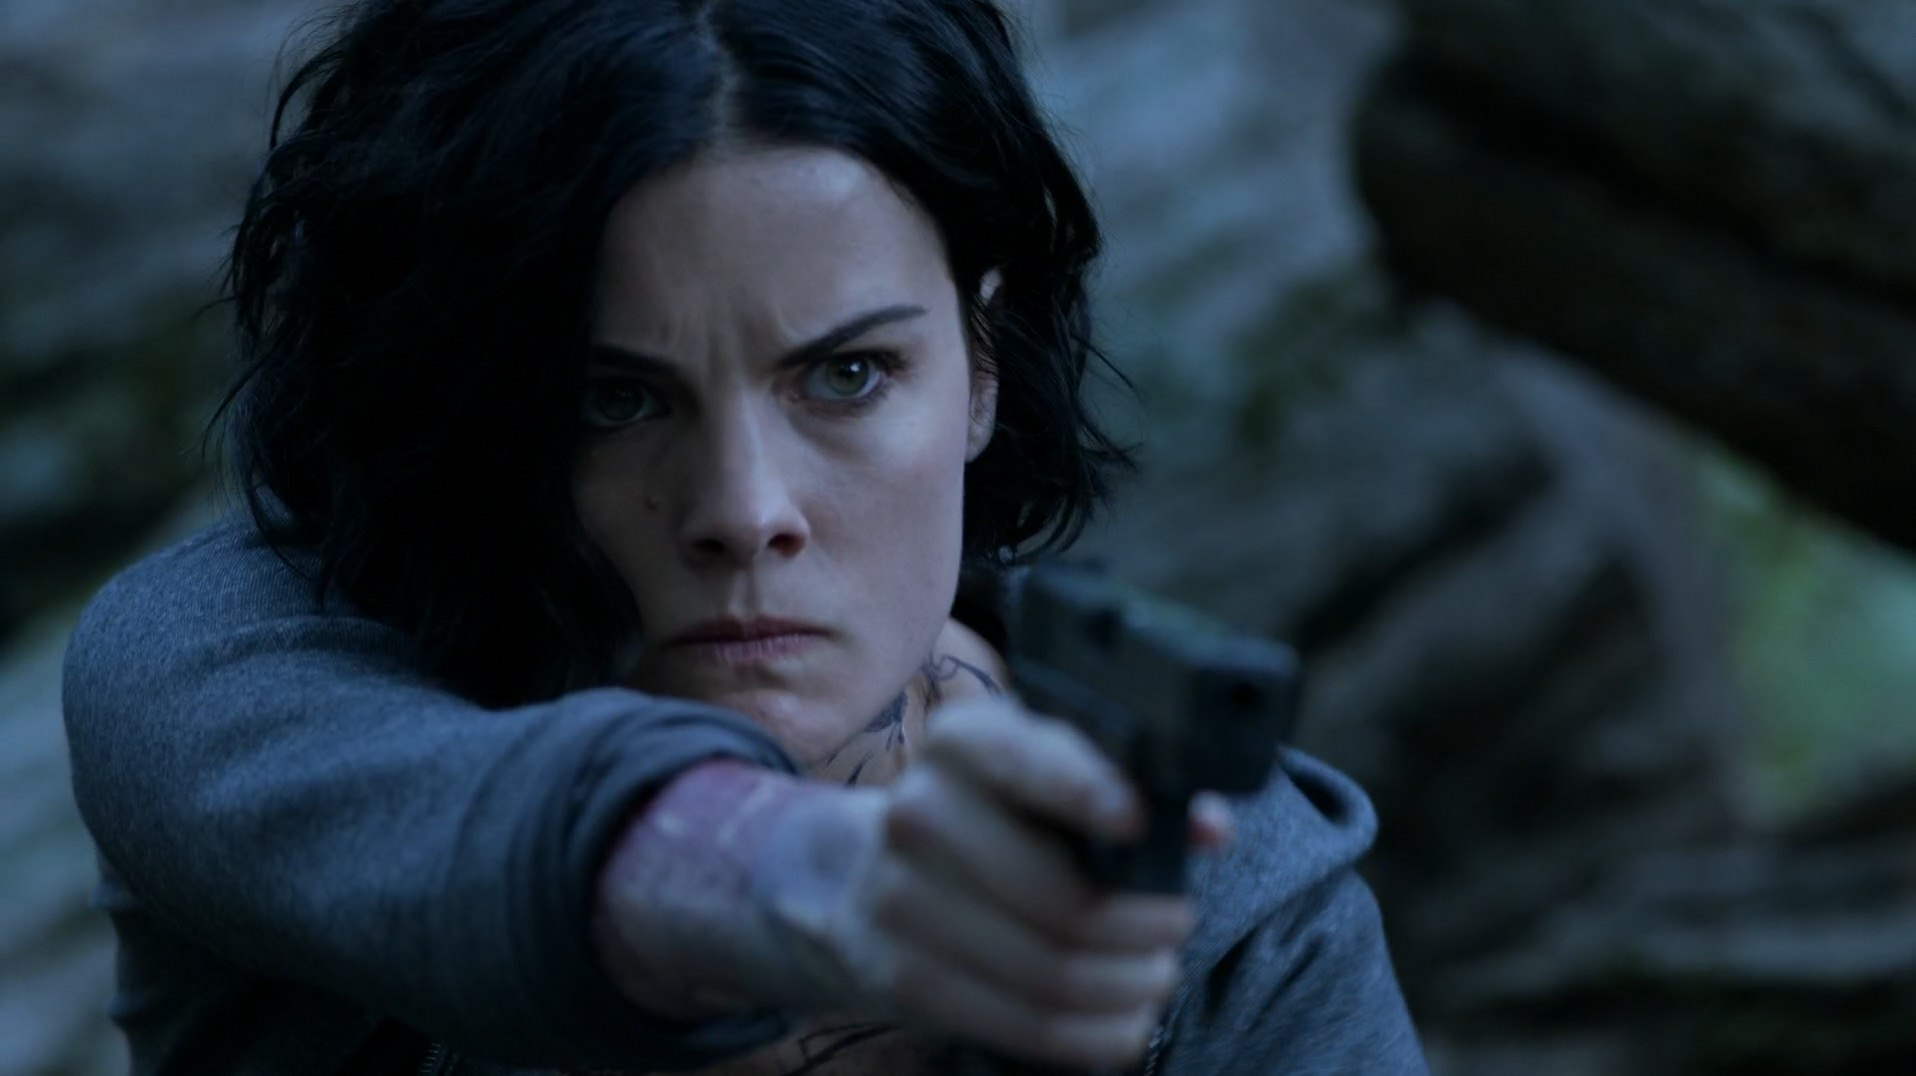 blindspot tv show return date Track blindspot new episodes, see when is the next episode, series schedule, trailer, calendar and more tv show guide for blindspot.